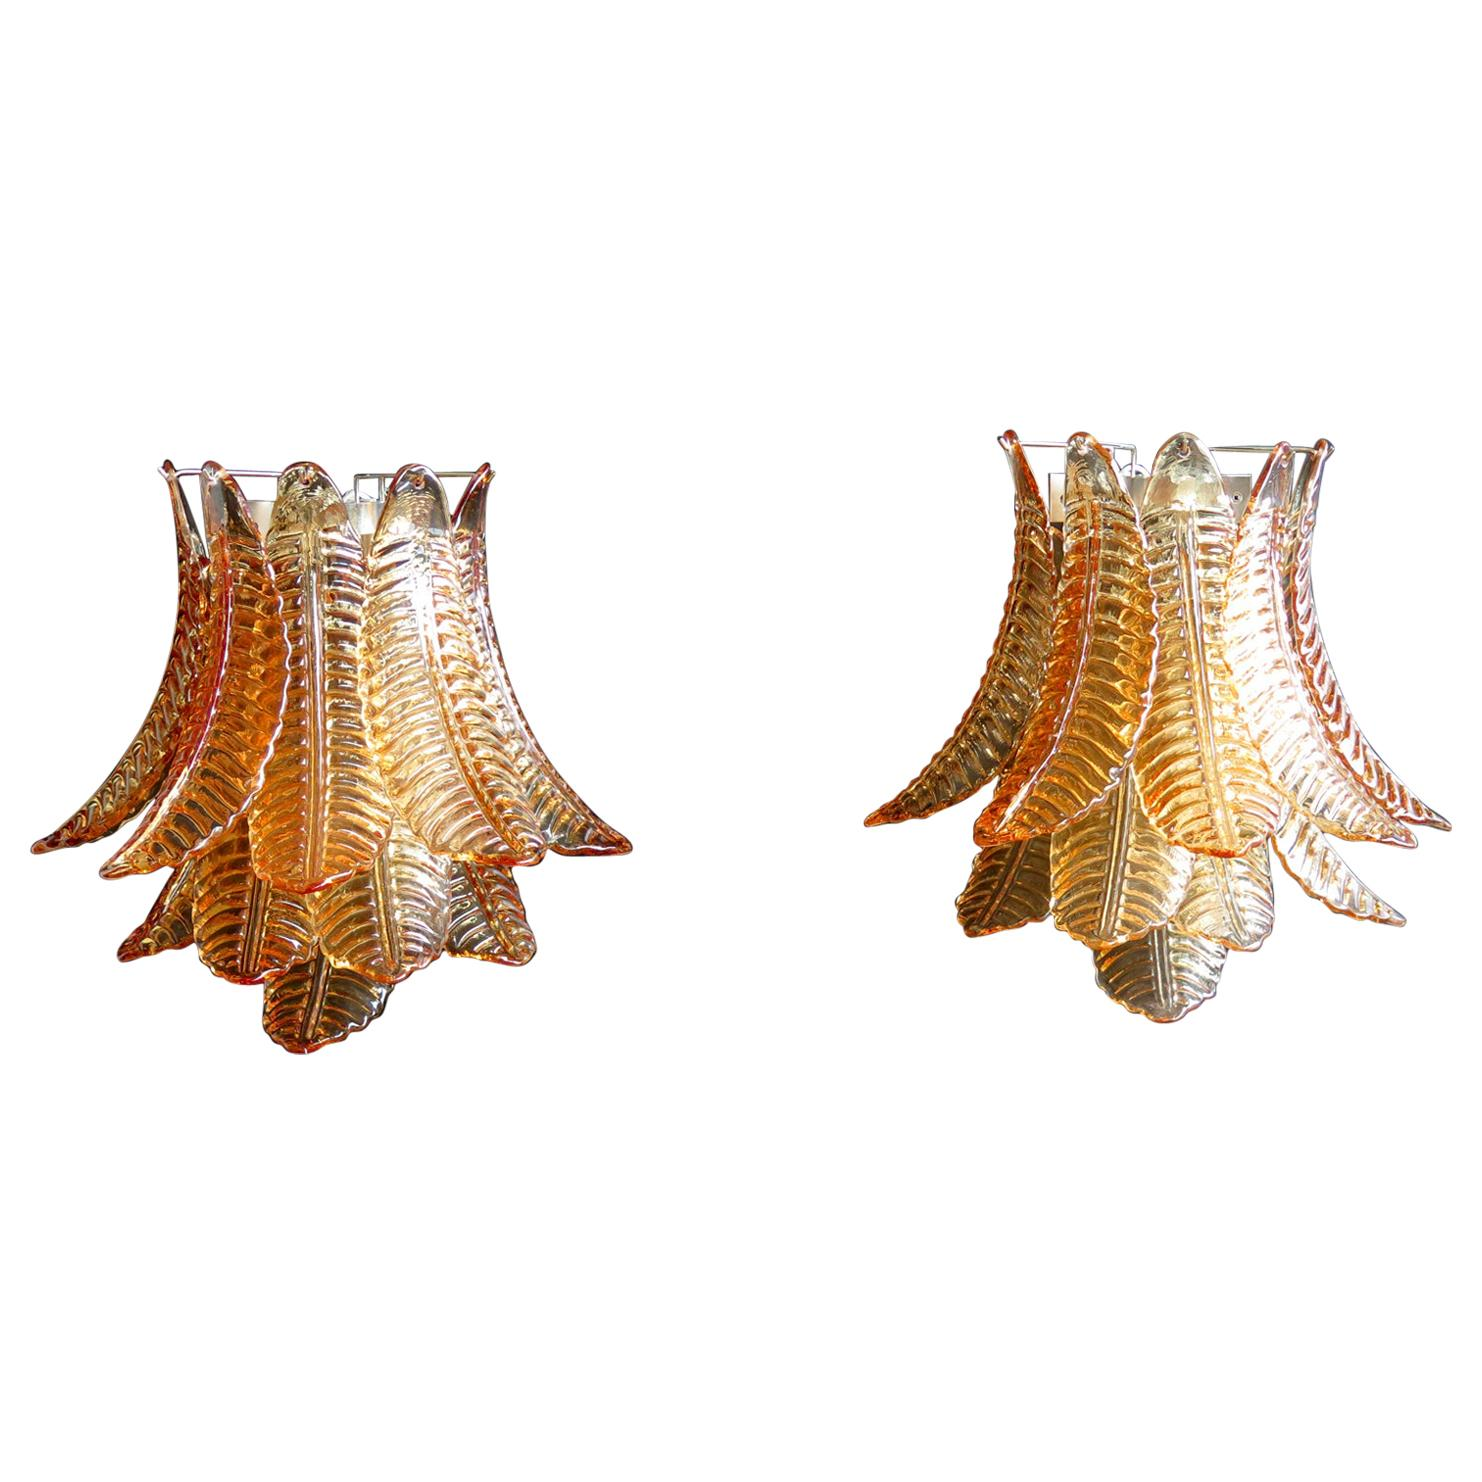 Pair of Vintage Murano Six-Tier Felci Wall Sconce, Amber Glasses